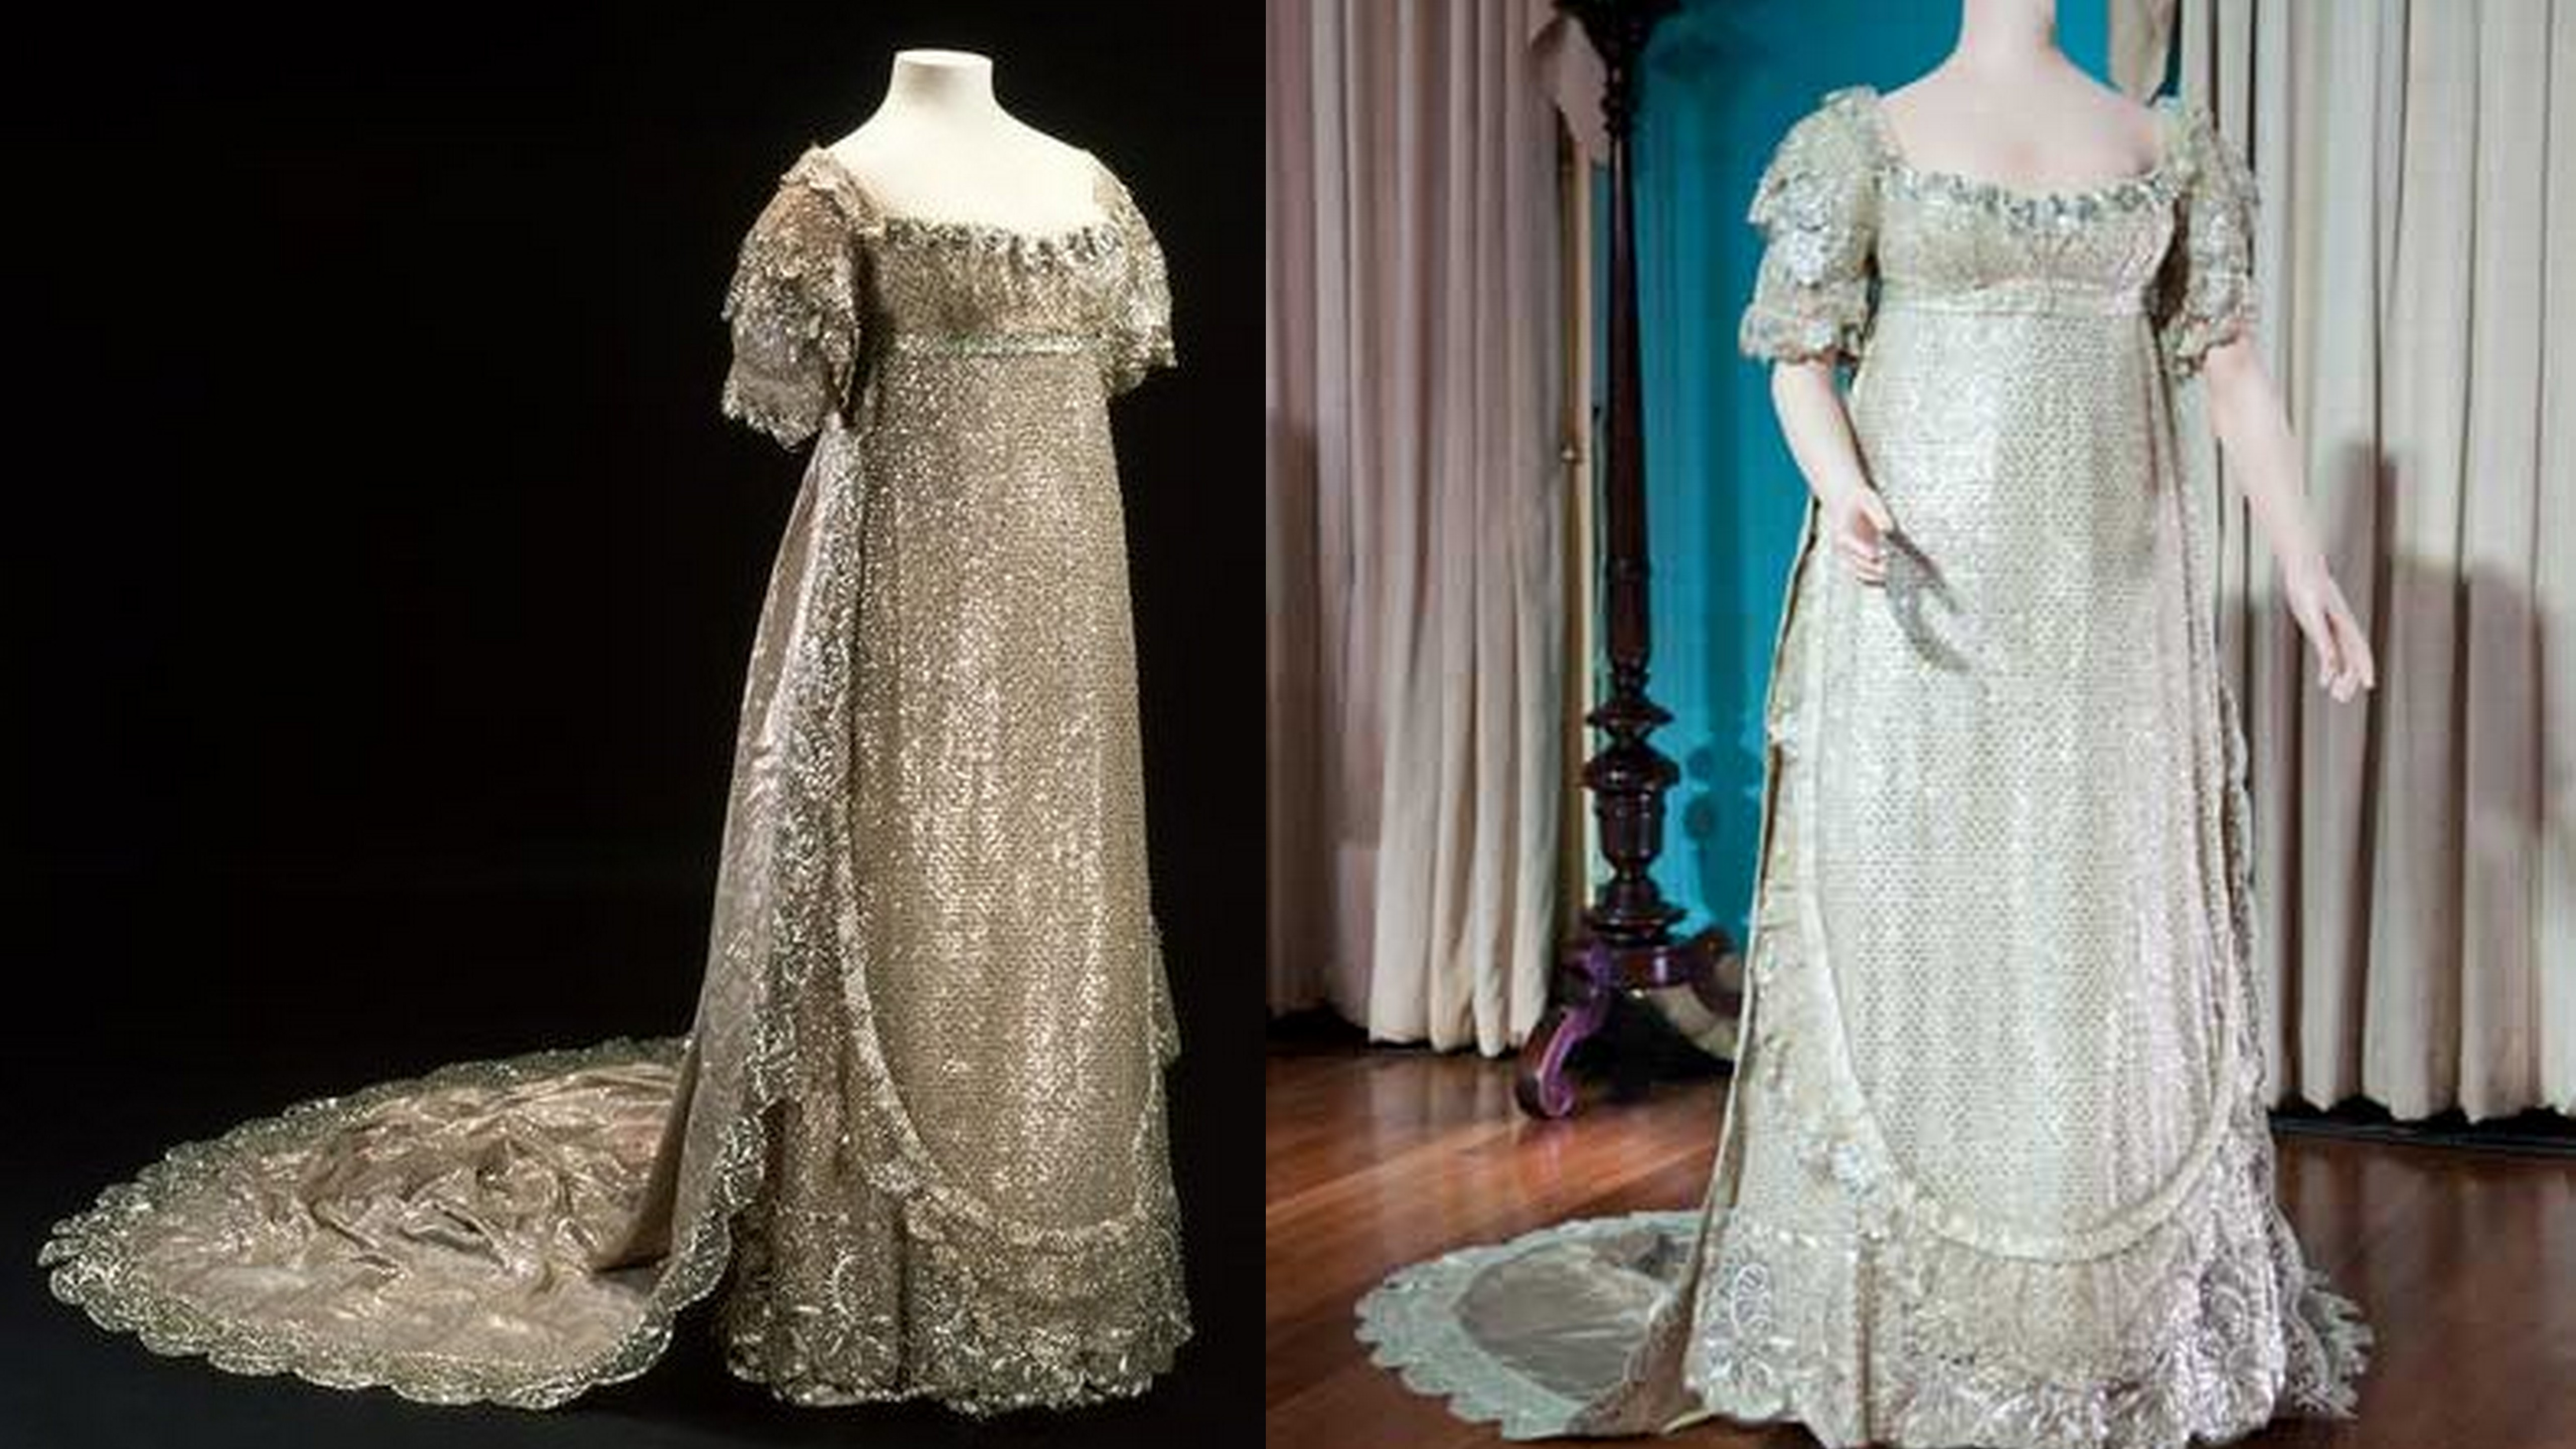 queen victoria wedding dress trendsetter wedding dress Royal wedding gowns were displays of power as much as national pride princess charlott